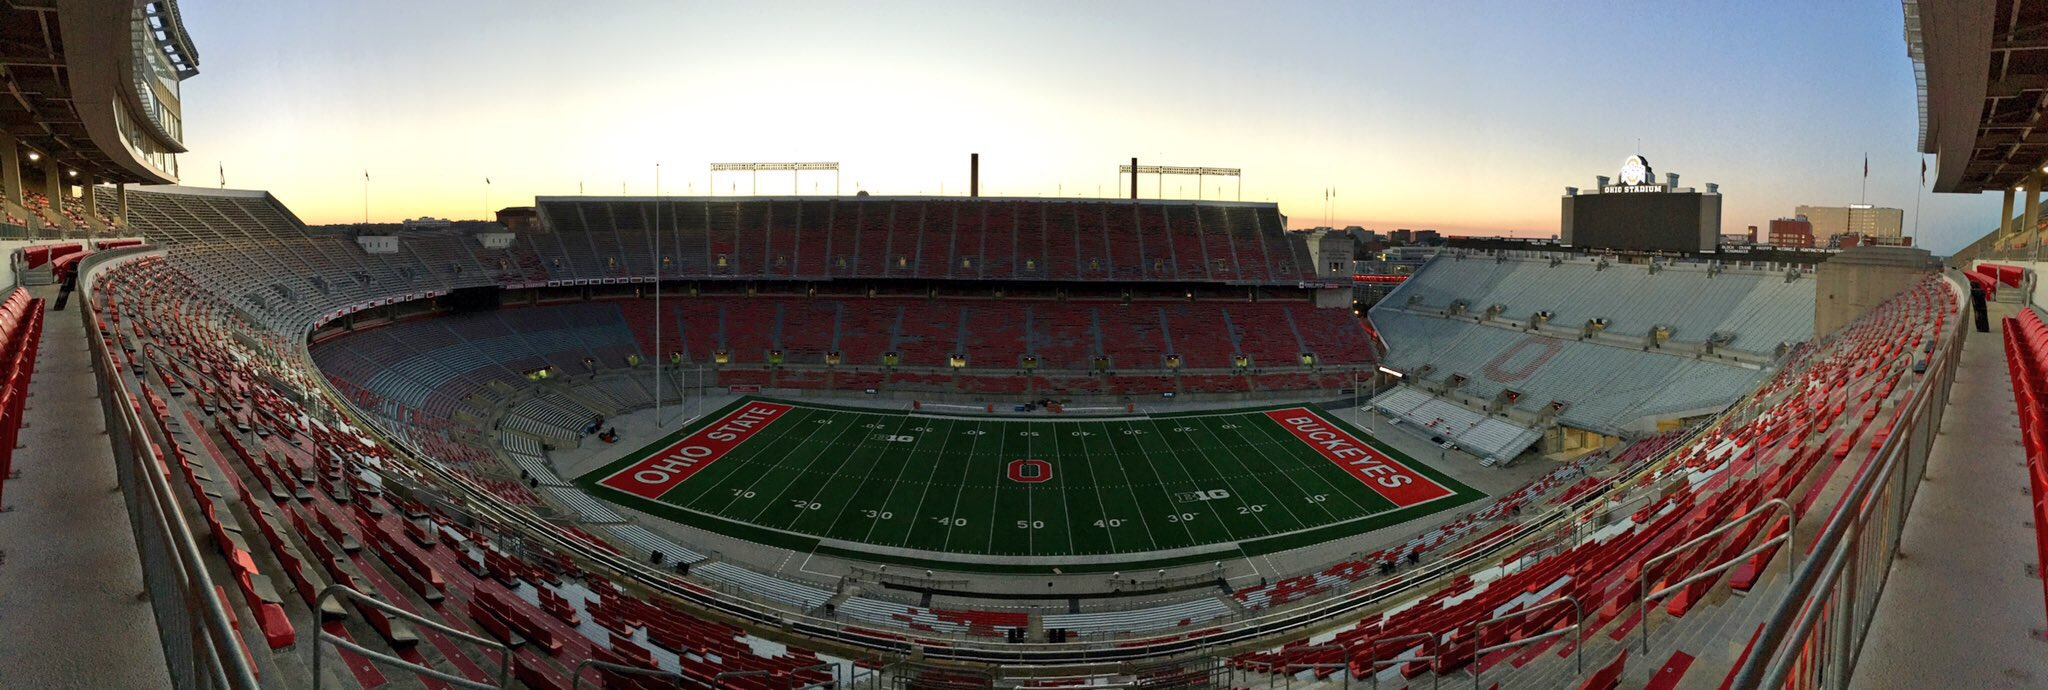 Ohiostatebuckeyes com the ohio state university official athletic - This Place 5 Hours Beatbg Https T Co